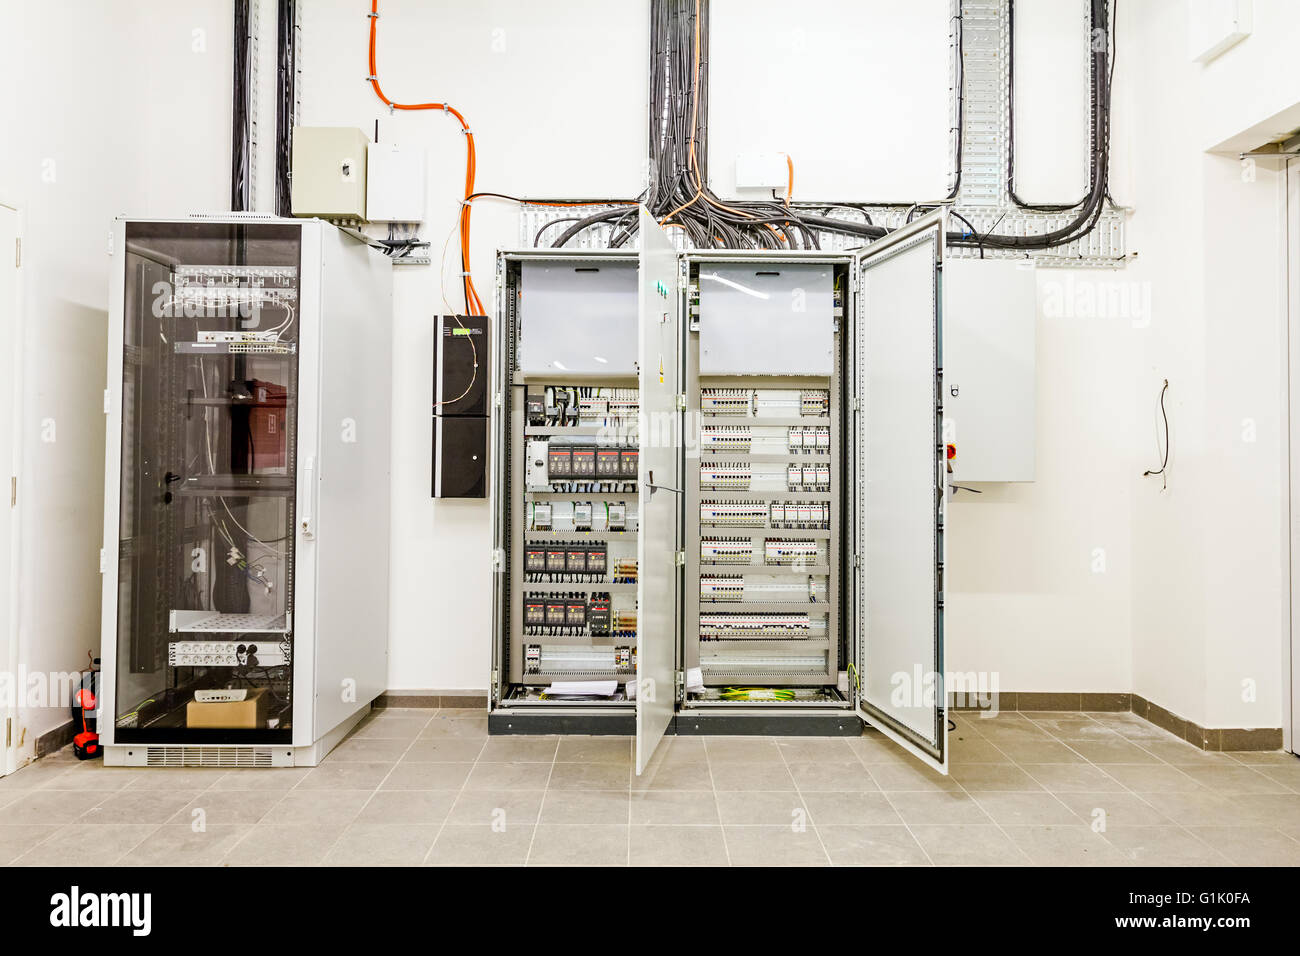 Power Switchboard Stock Photos Images Alamy Switchover Relay Automatic Programming Has Control Over Electrical Panel Lines Located Inside Of The Switch